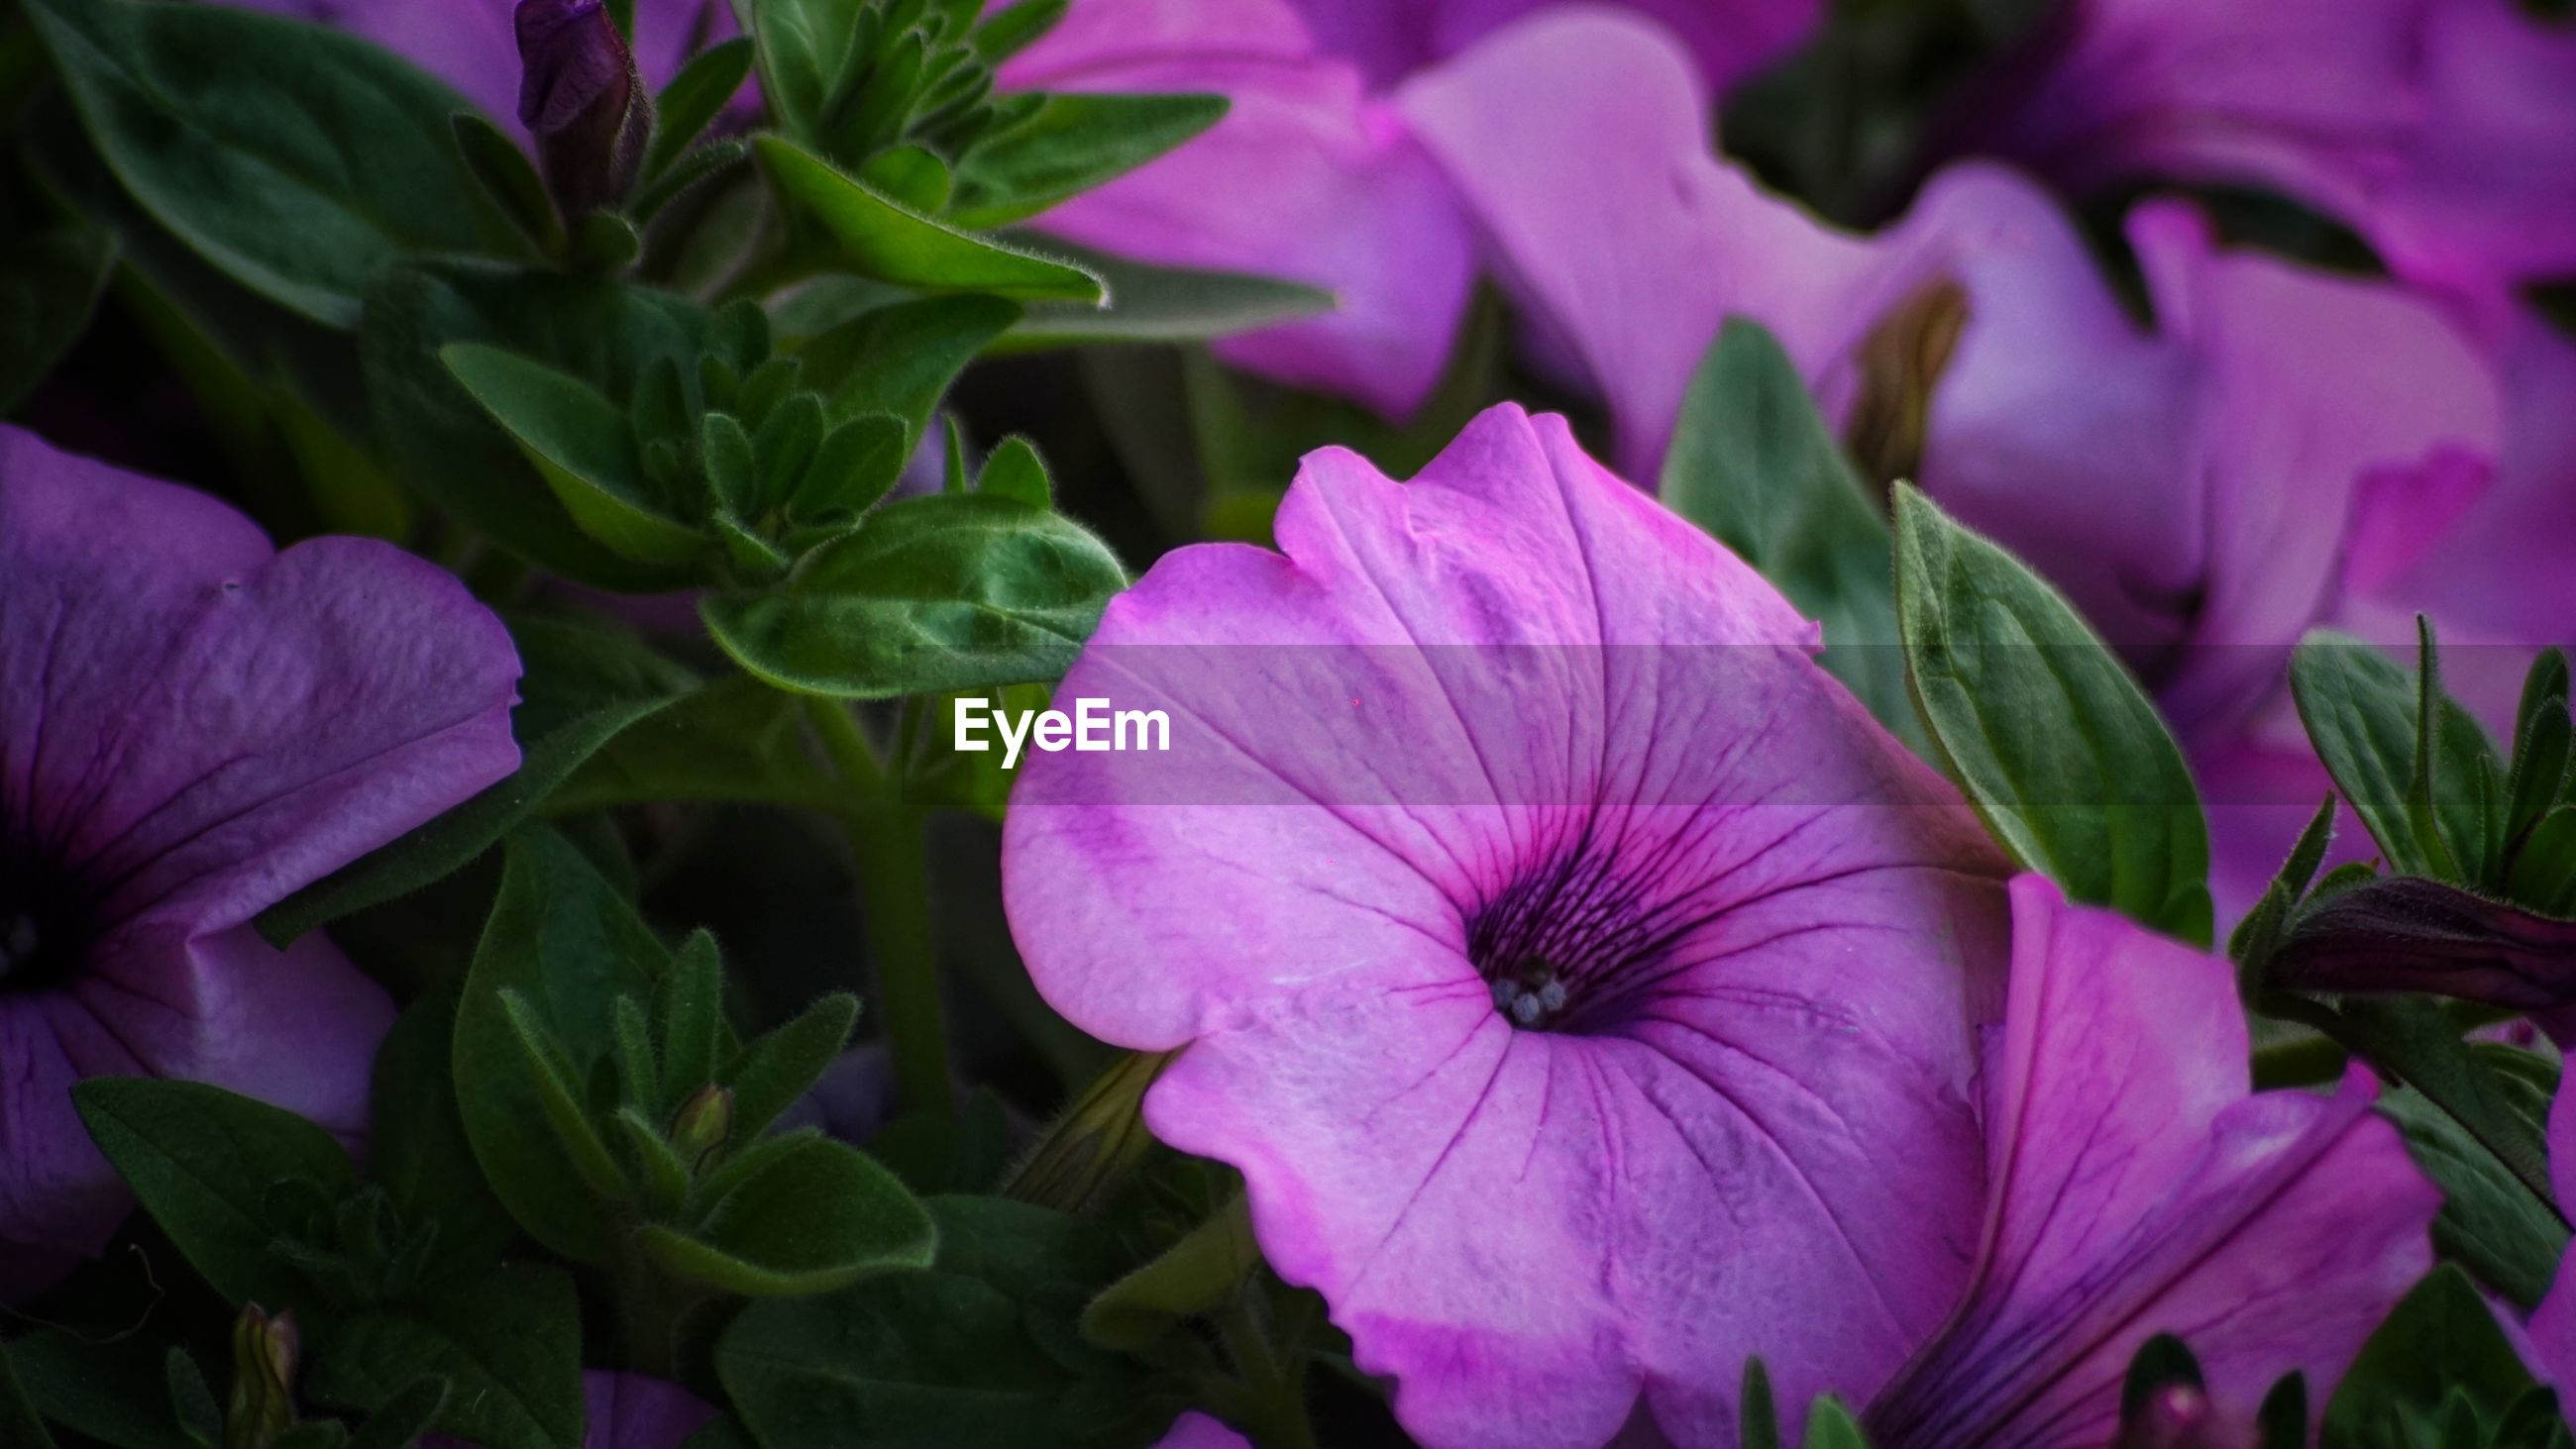 CLOSE-UP OF PINK AND PURPLE FLOWERING PLANTS